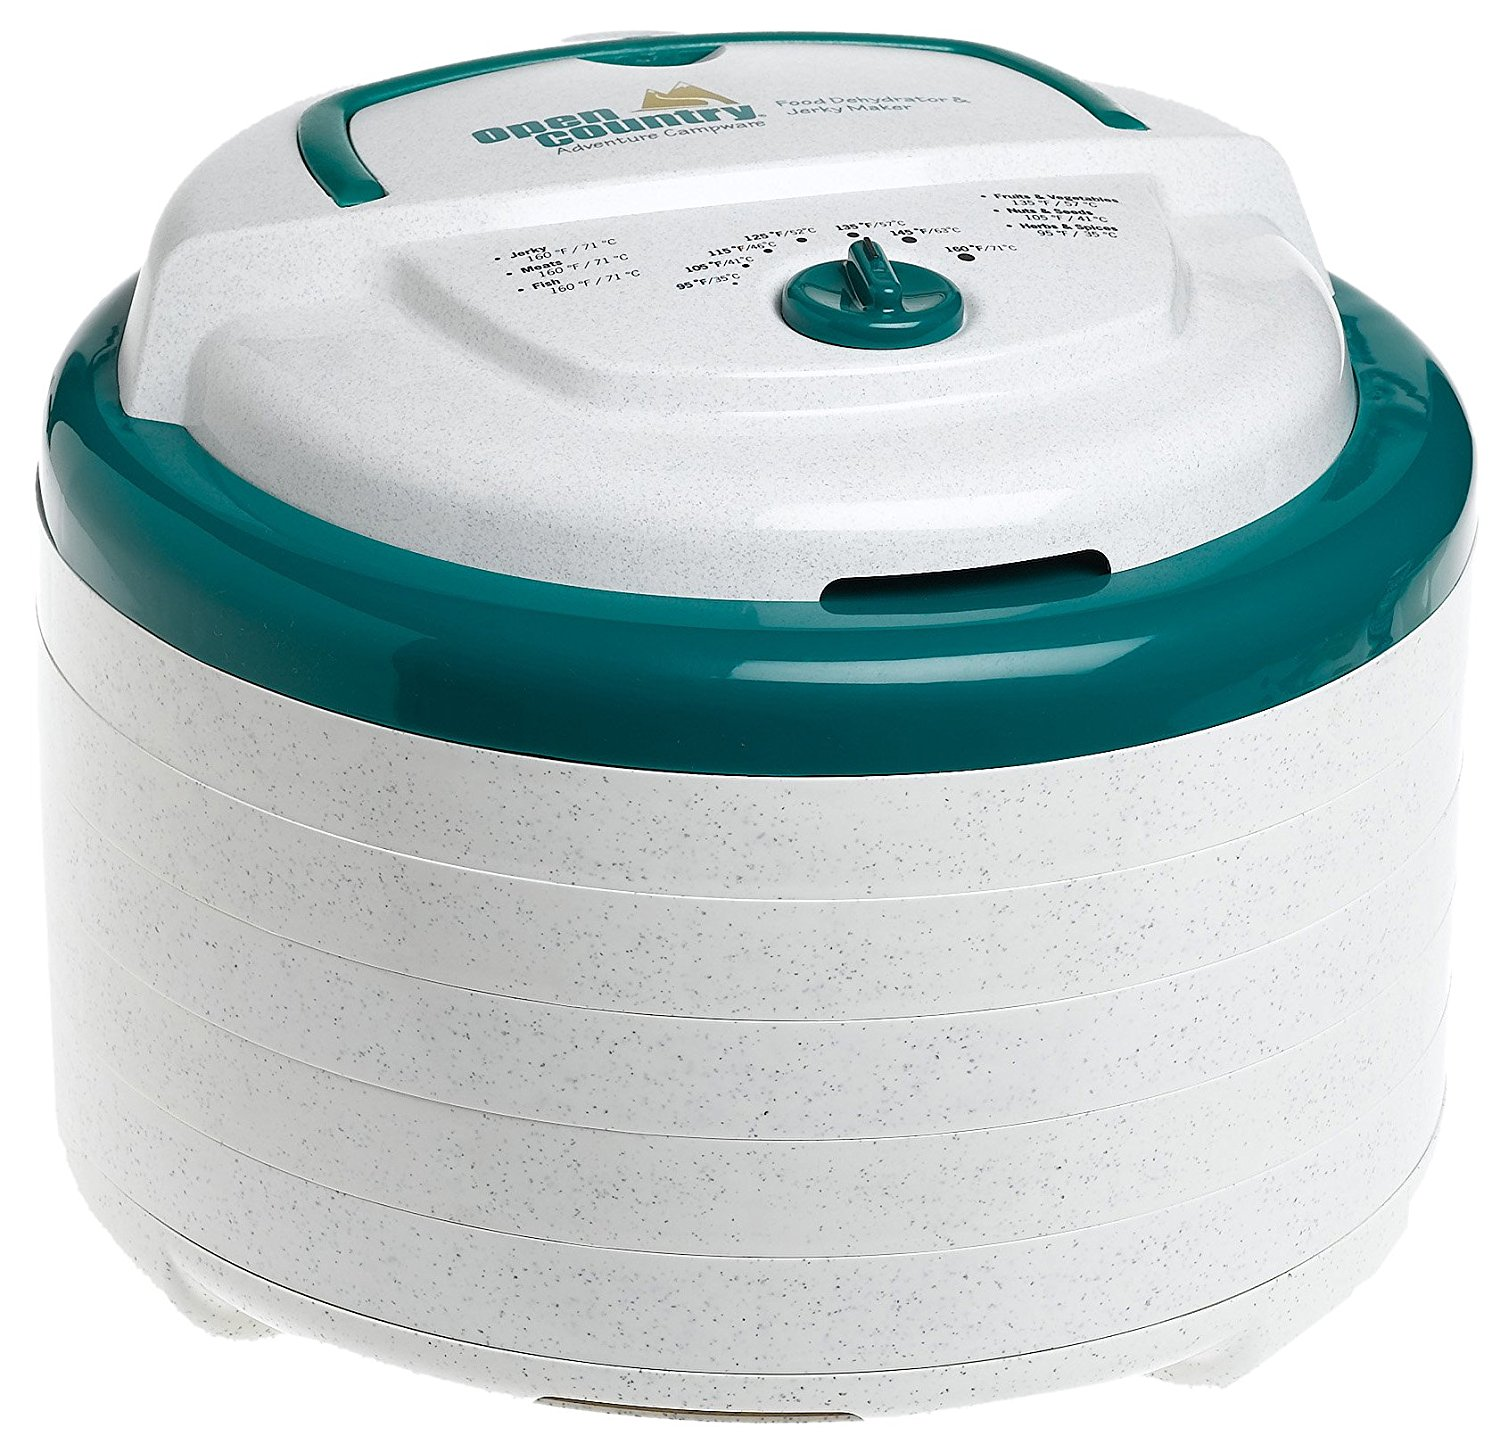 NESCO'S Open Country 600 Watt Dehydrator, FD-75SK by Metal Ware Corp.